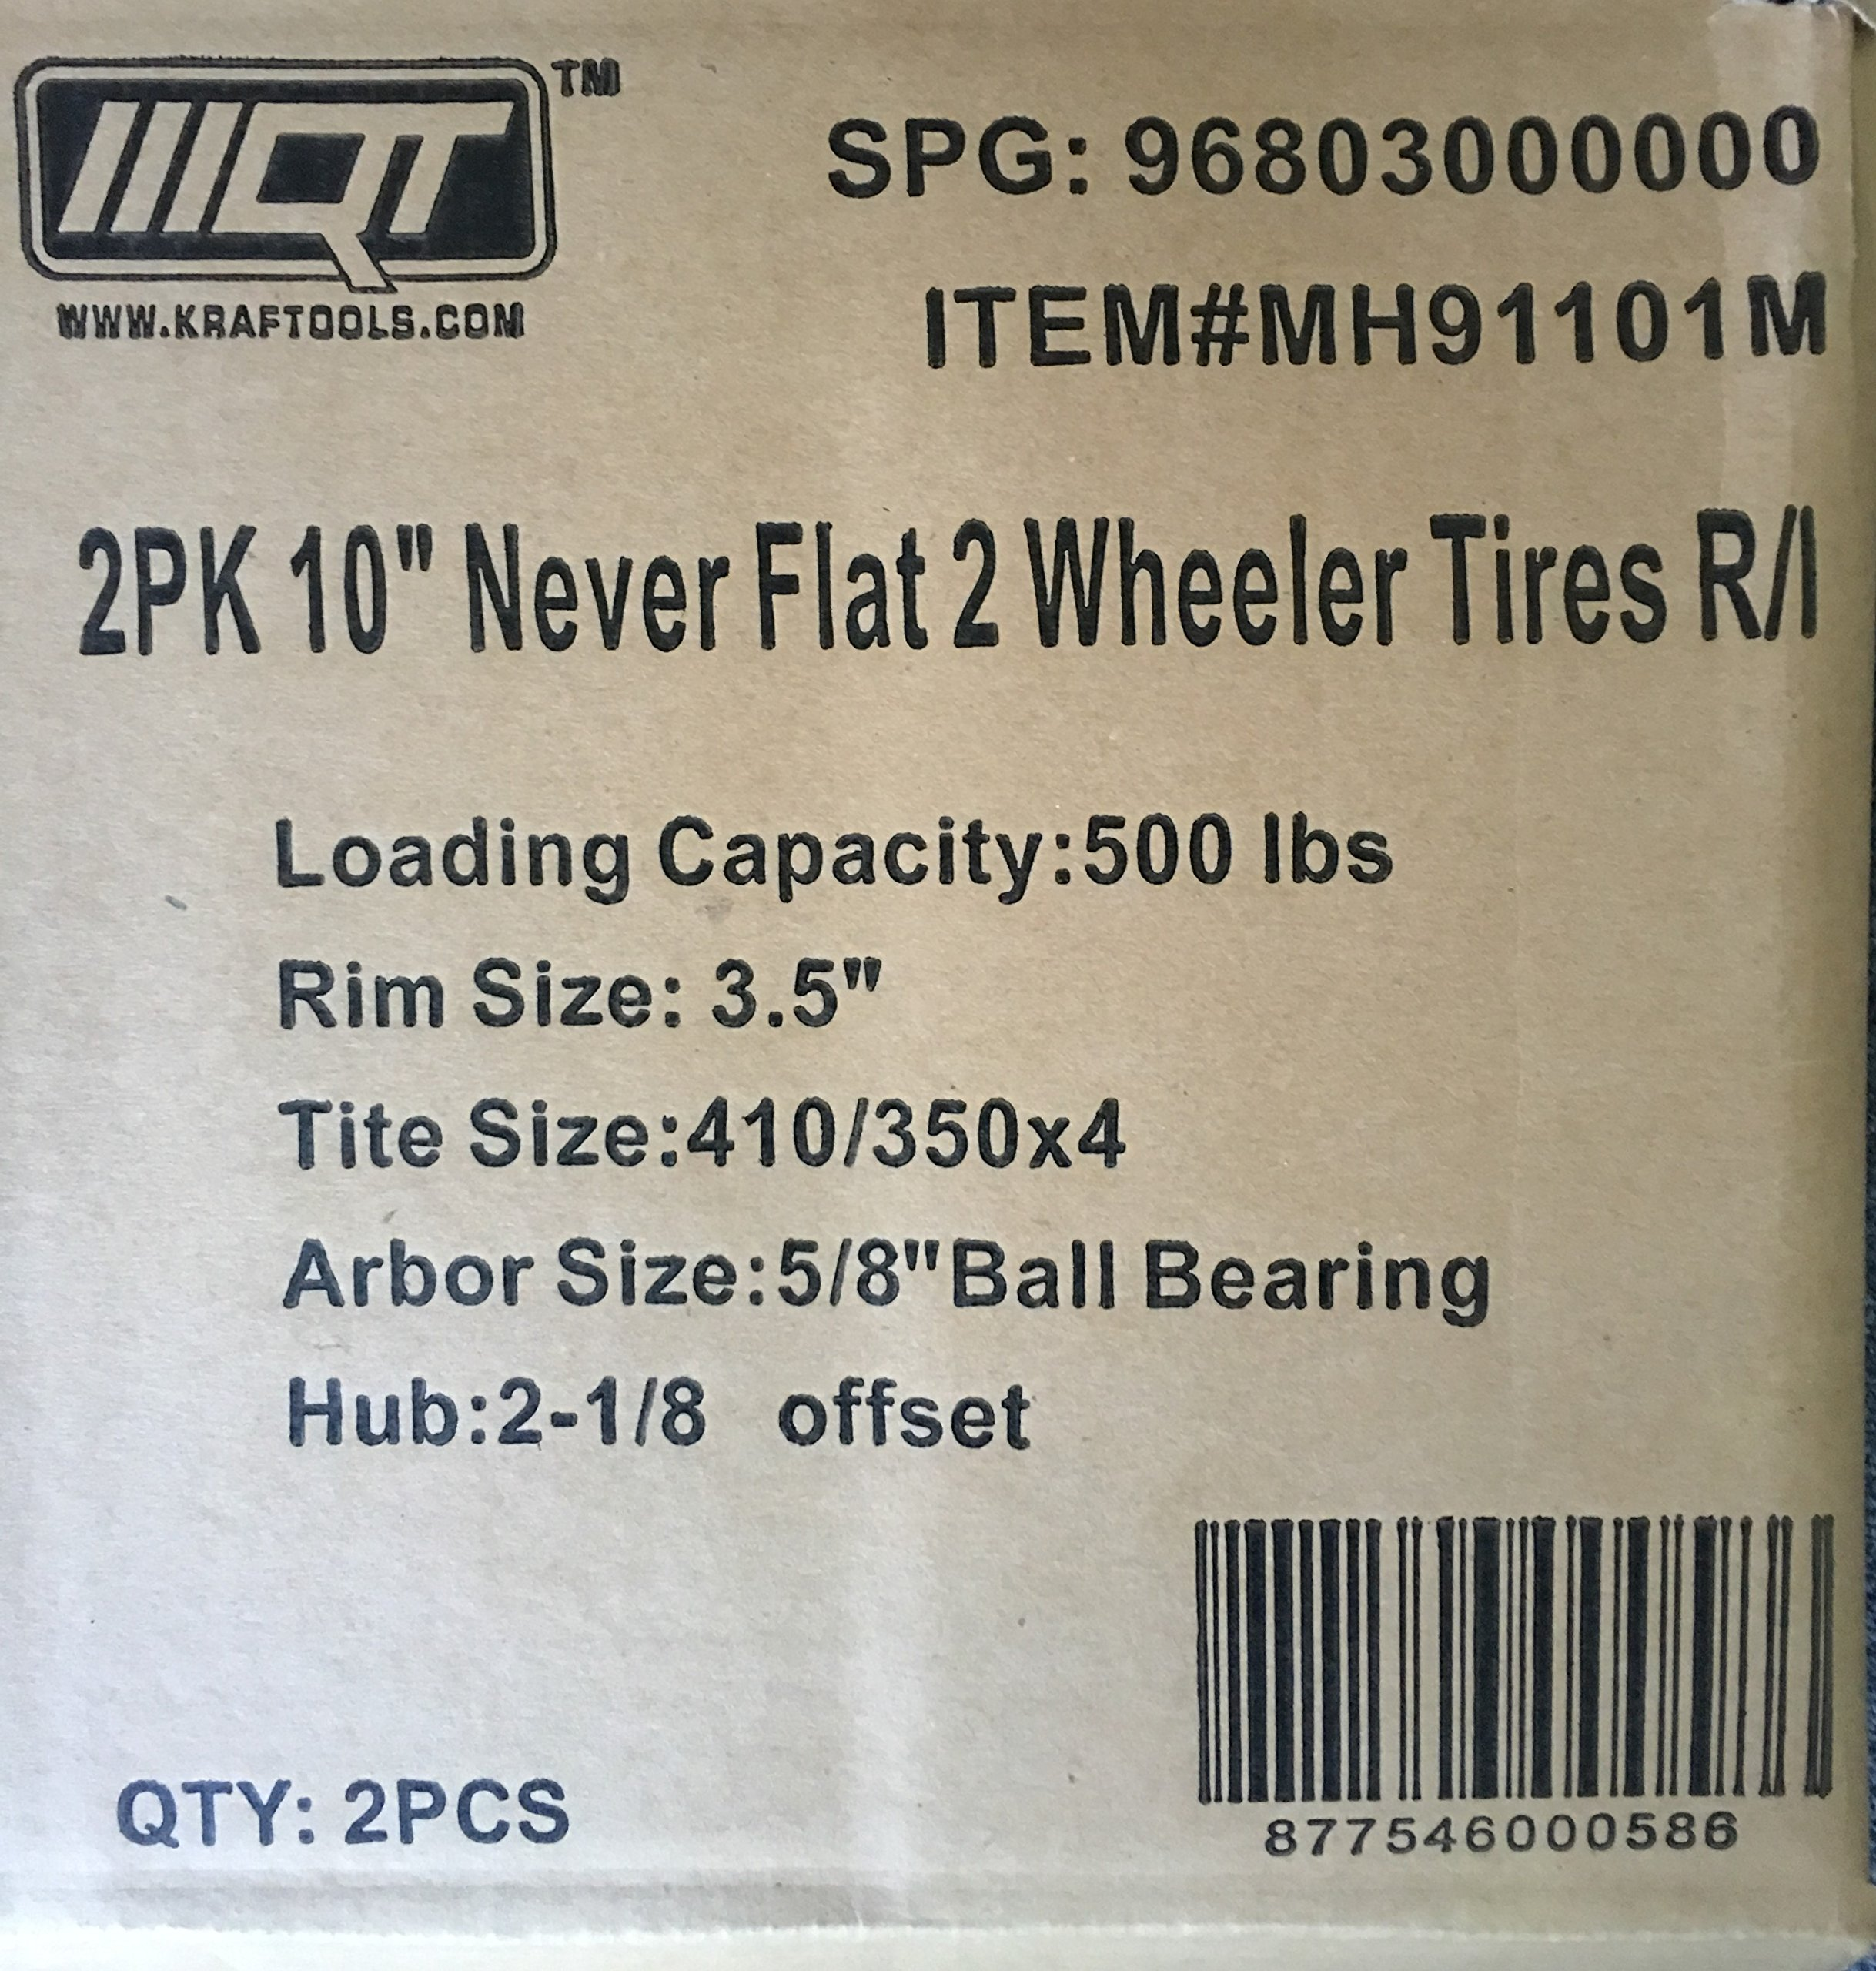 New Pair of 500LB Non Flat Tires, Hand Truck / All-Purpose Utility Tire on Wheel, 2 1/8'' Offset Hub, 5/8'' Bearings by MQT (Image #3)